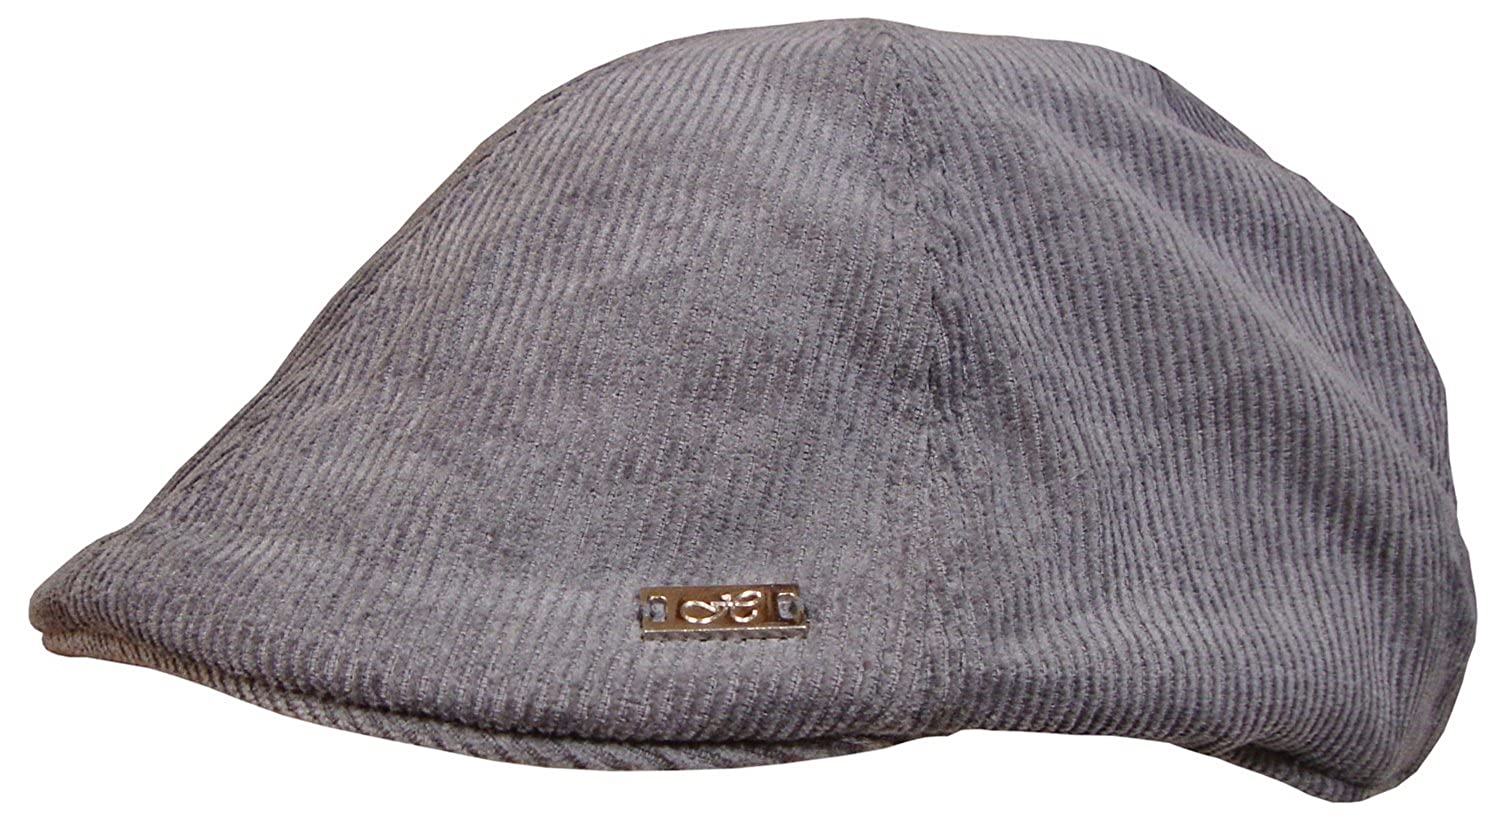 Gents Mens Ladies Tweed Check Flat Cap Pre Formed Peak Grey Or Brown Wool Mix